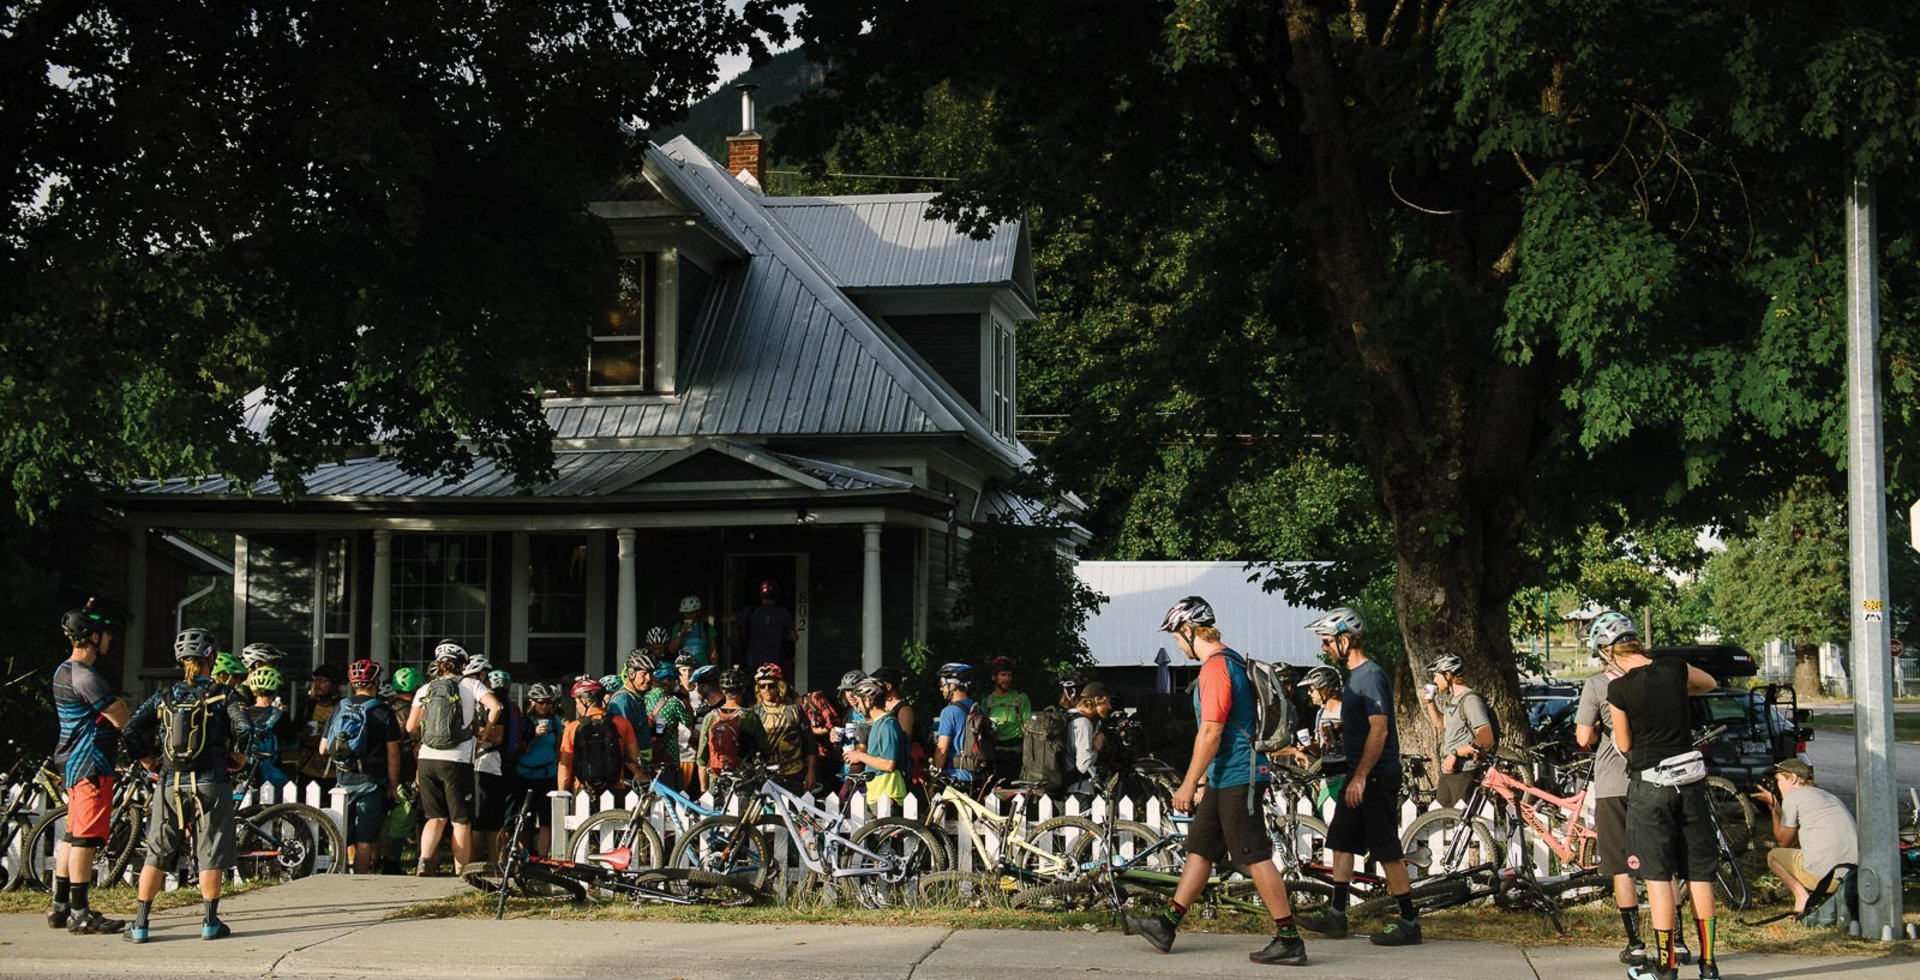 Mojito bars aren't a typical stop on Pedal and Pint rides, but they're always a good idea. Riders enjoy some free refreshments at the house of Karl Guillote, a recent Revelstoke resident and Pedal and Pint regular.